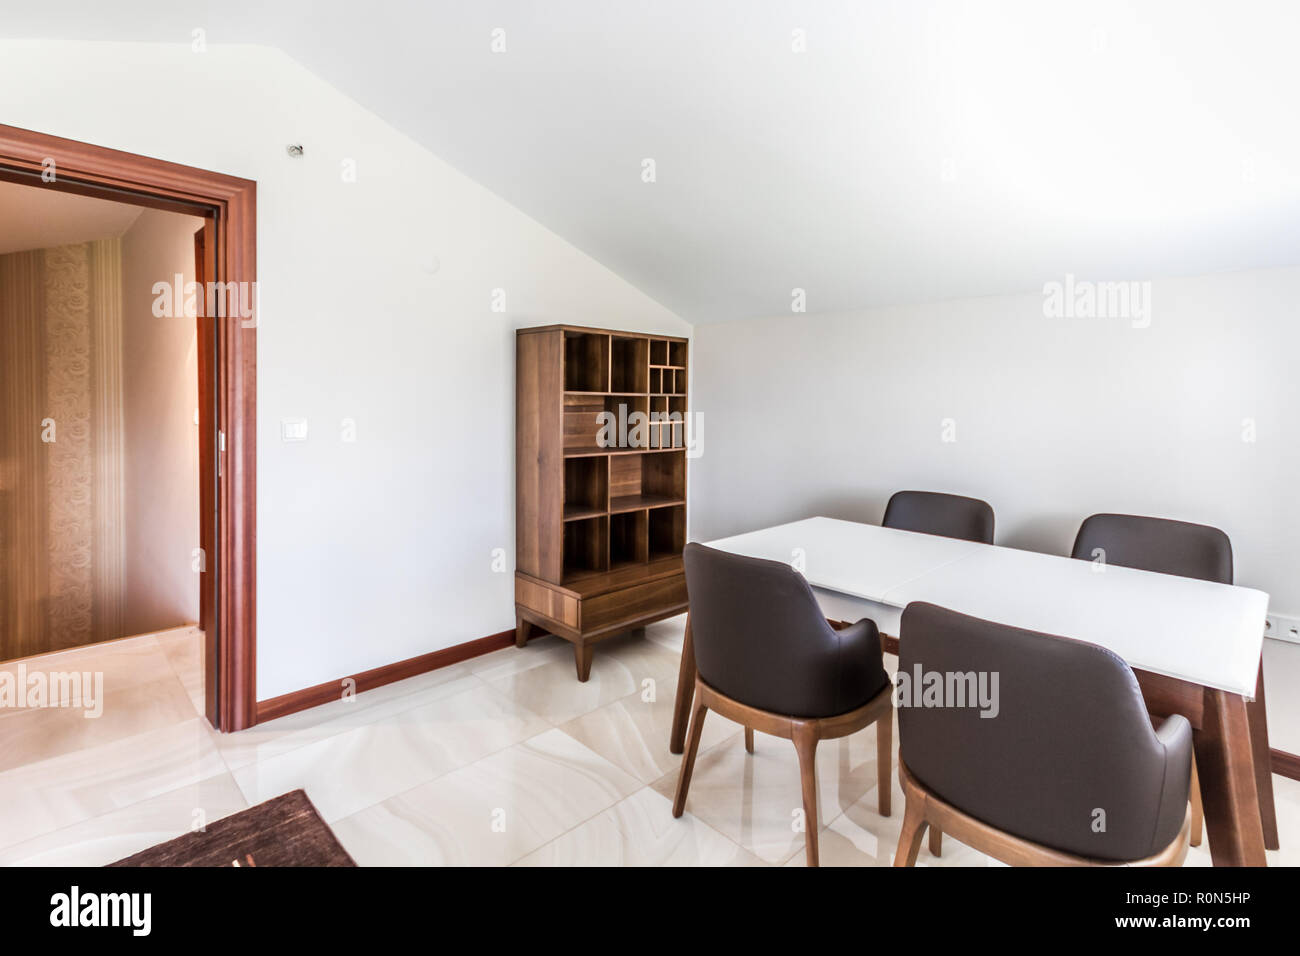 Table and chairs for multipurpose use in an attic room - Stock Image